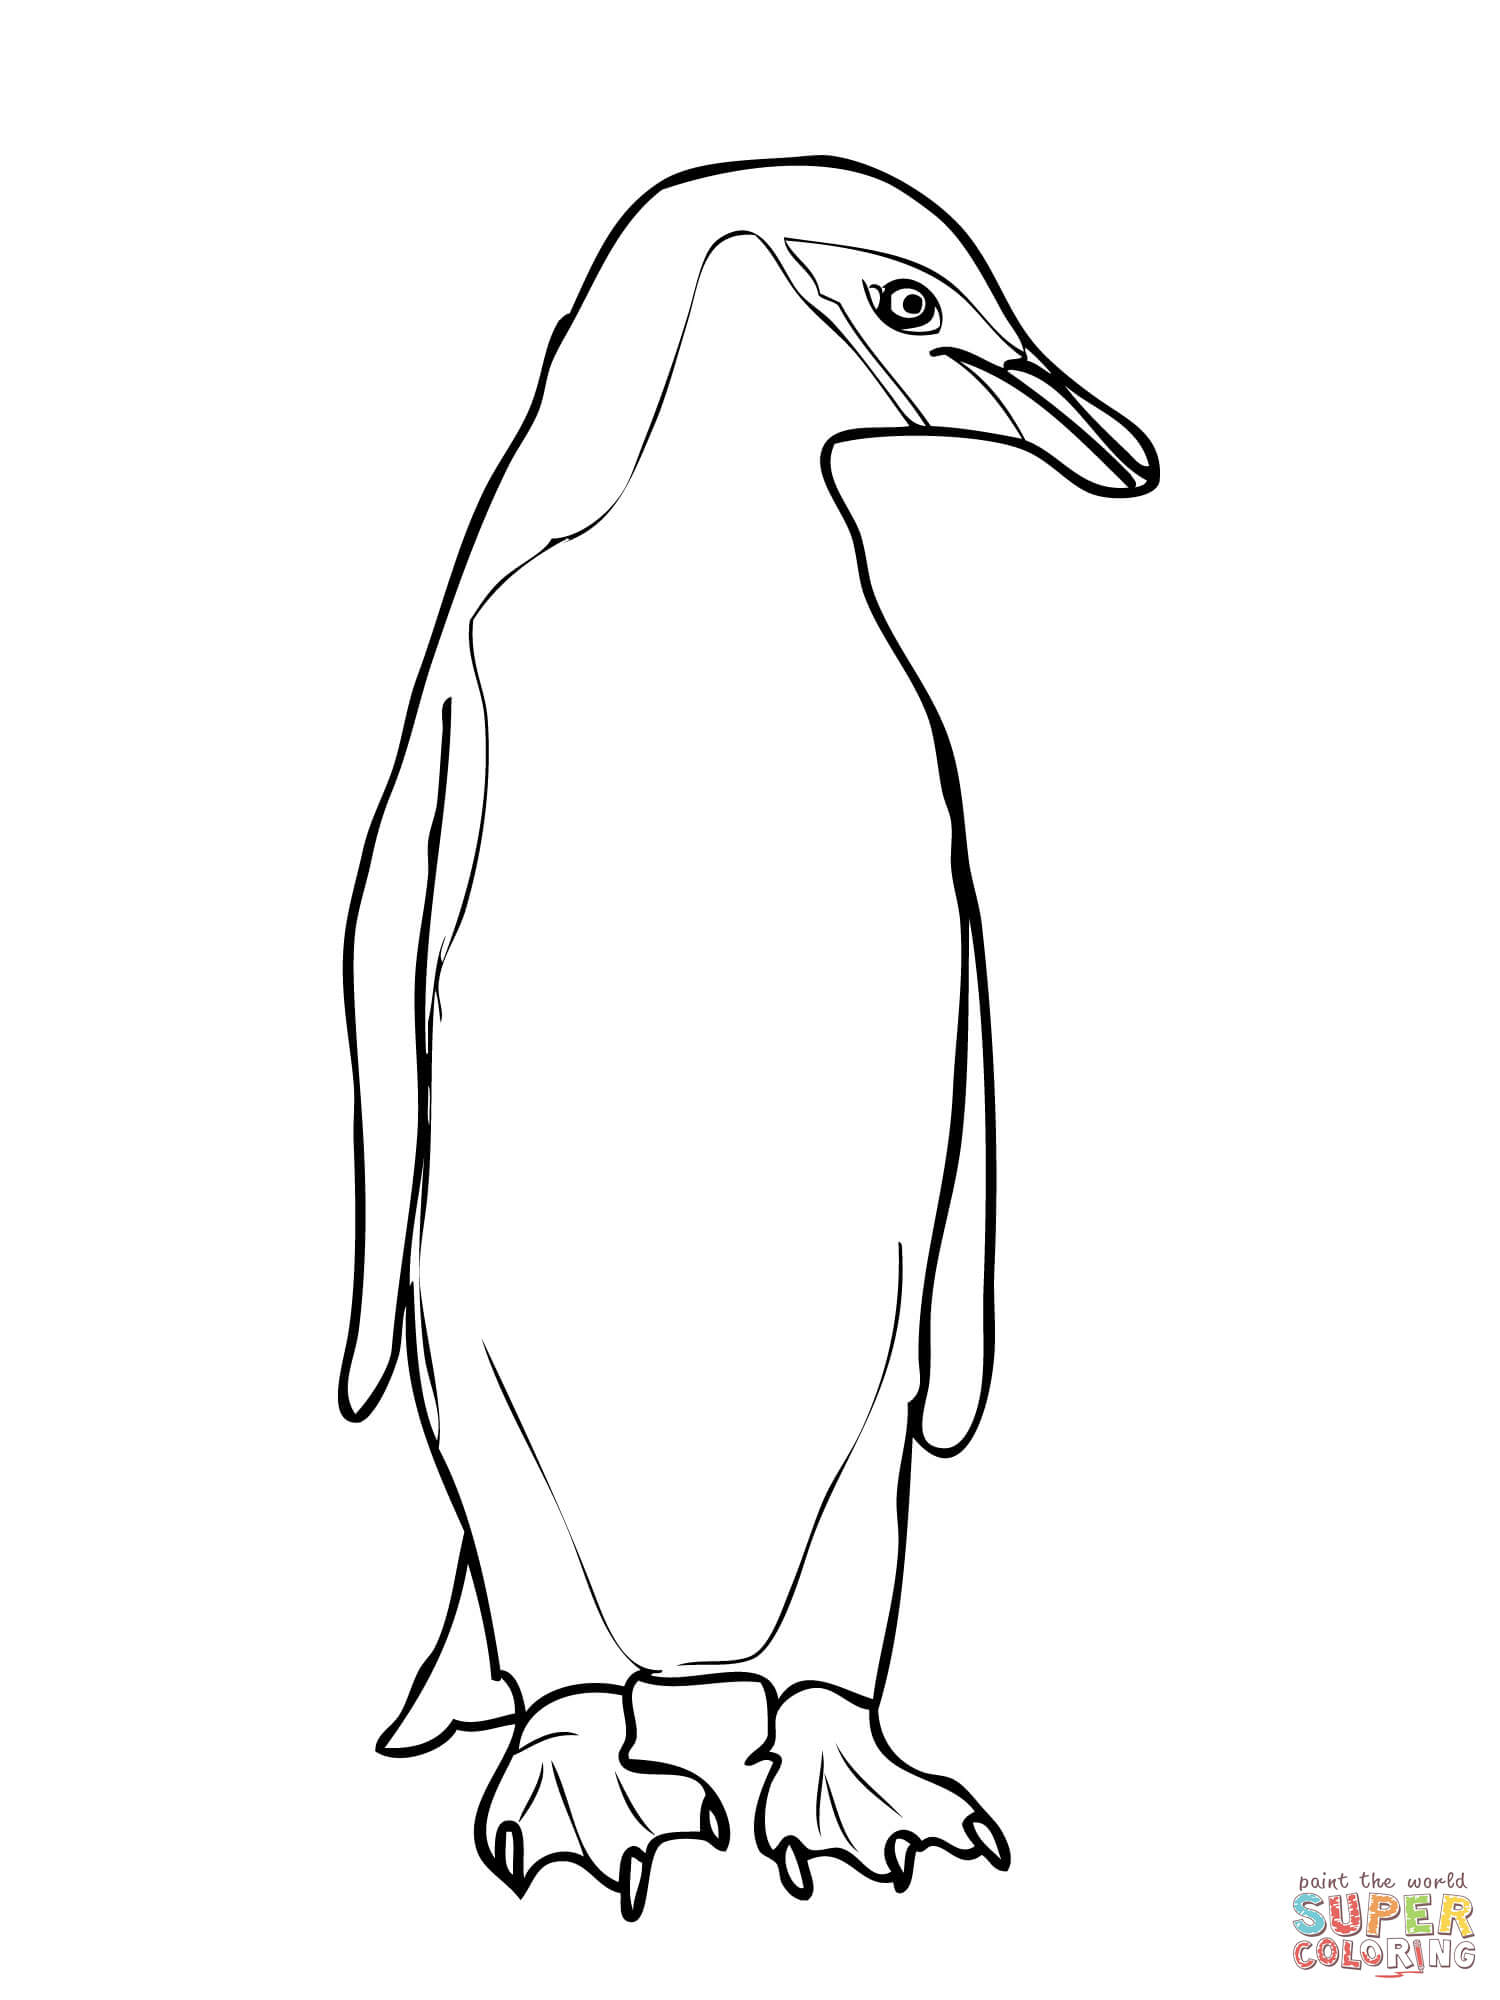 Chinstrap Penguin coloring page.